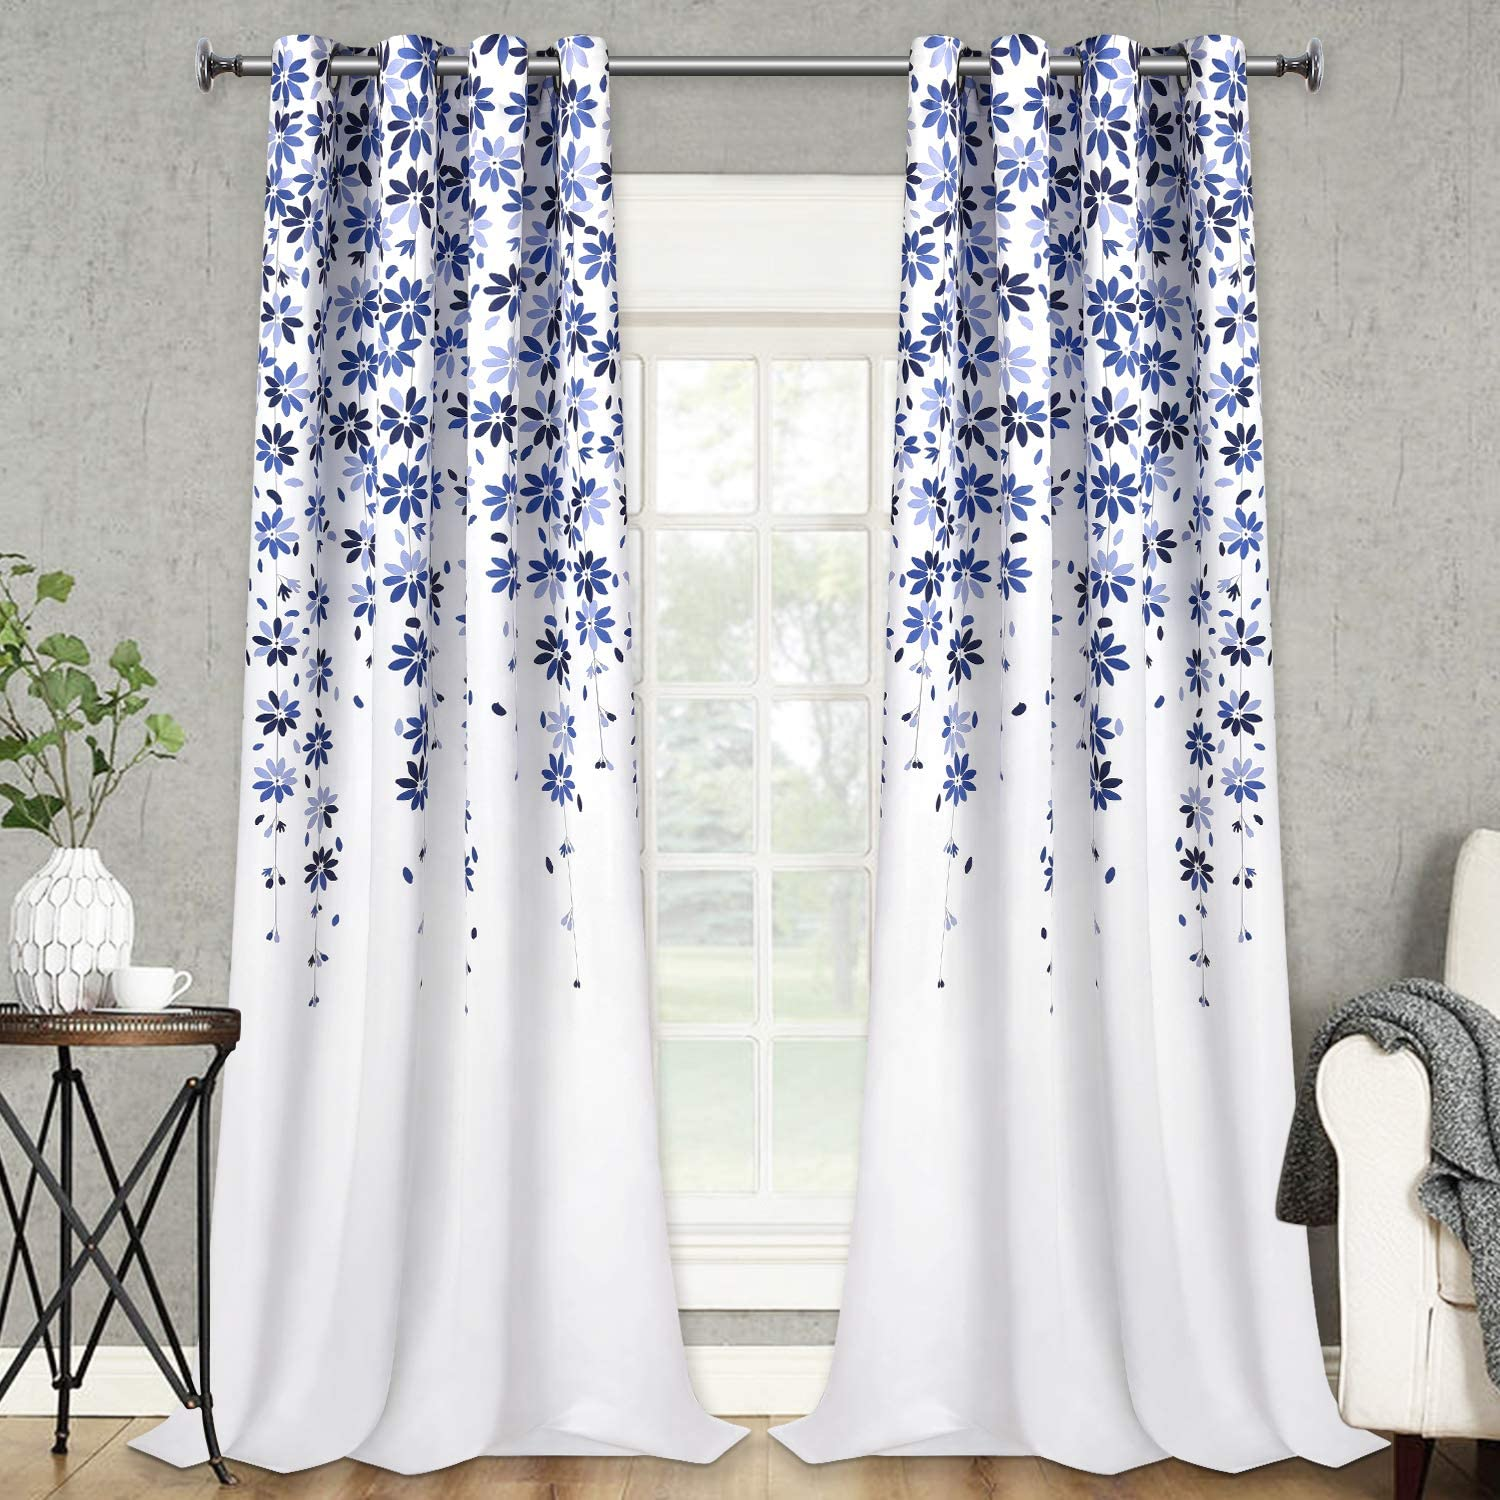 VERTKREA Flowers Window Curtain Floral Window Treatment Grommet Curtains 52 × 84 Inches Flower Drapes for Bedroom Living Room, Blue, Set of 2 Panels